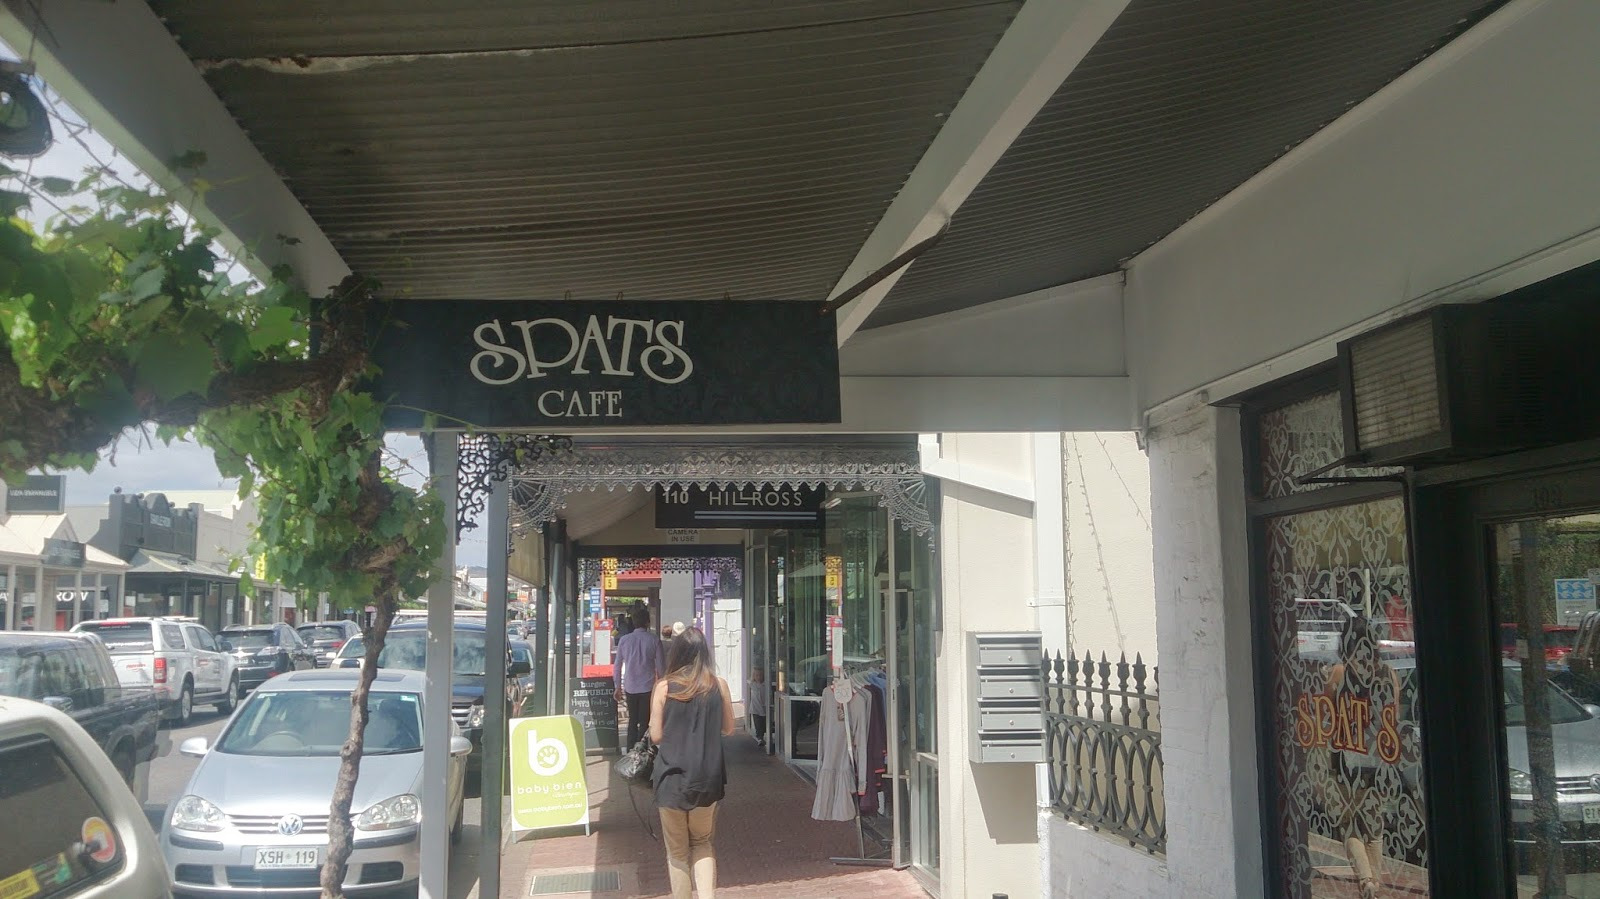 Hyde Park - Spats Cafe